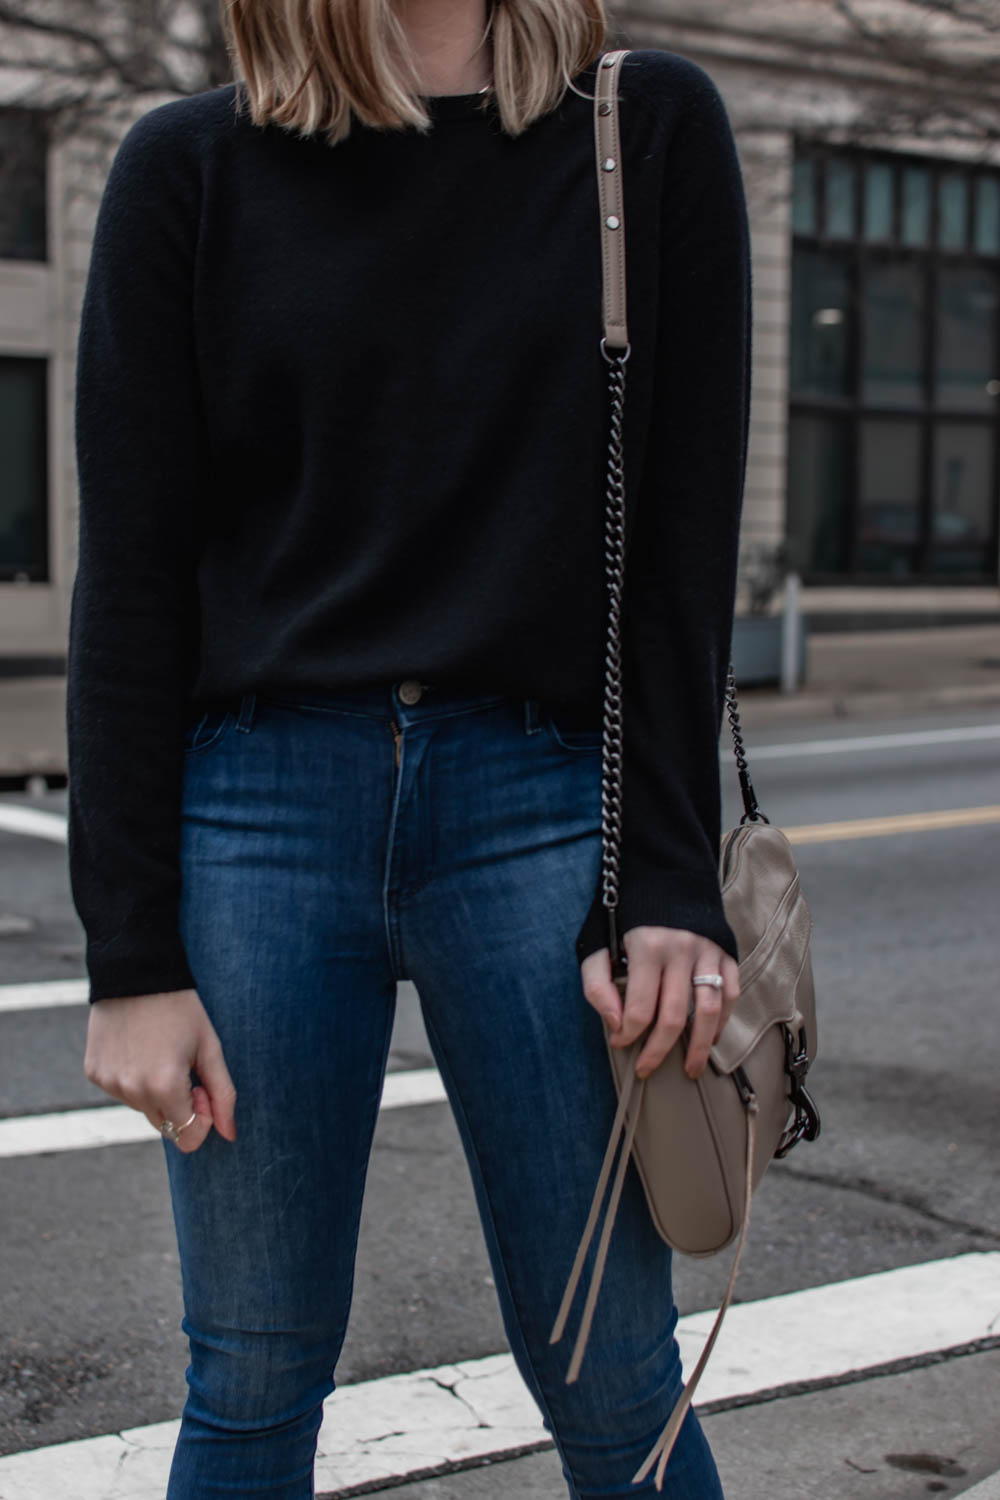 Cashmere Sweater and Denim from Mott & Bow